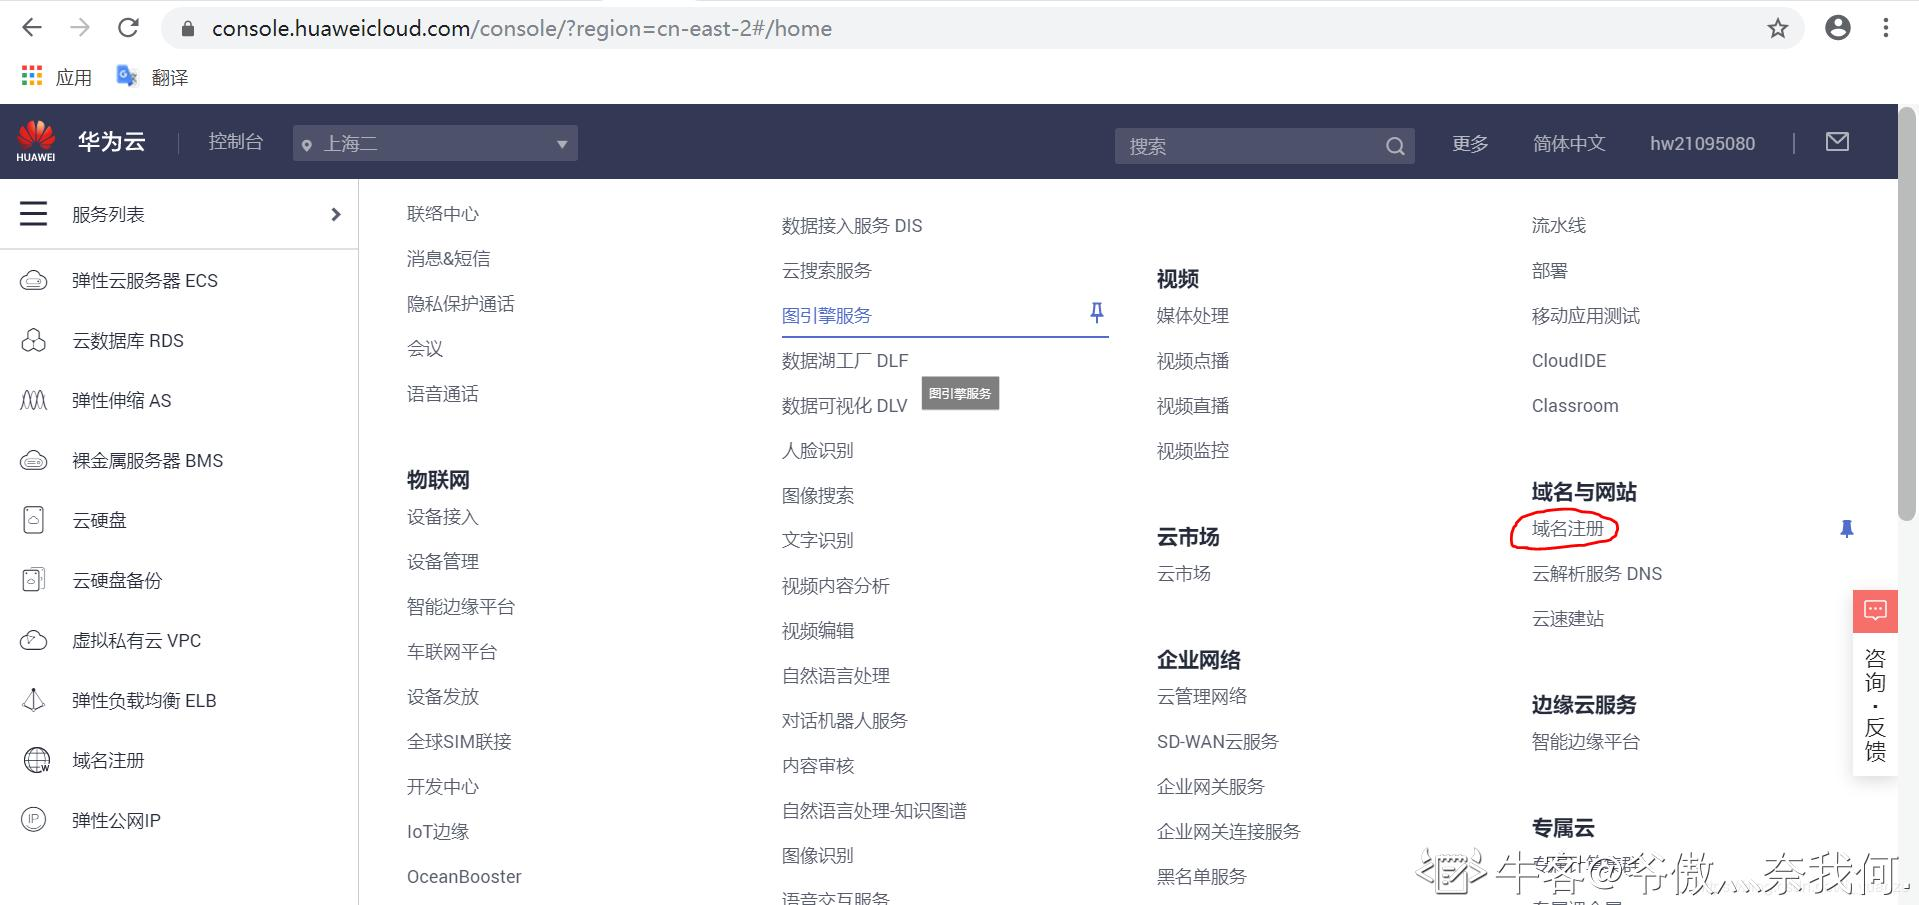 Huawei Cloud Server Uses To Build A Minimalist Server Programmer Sought